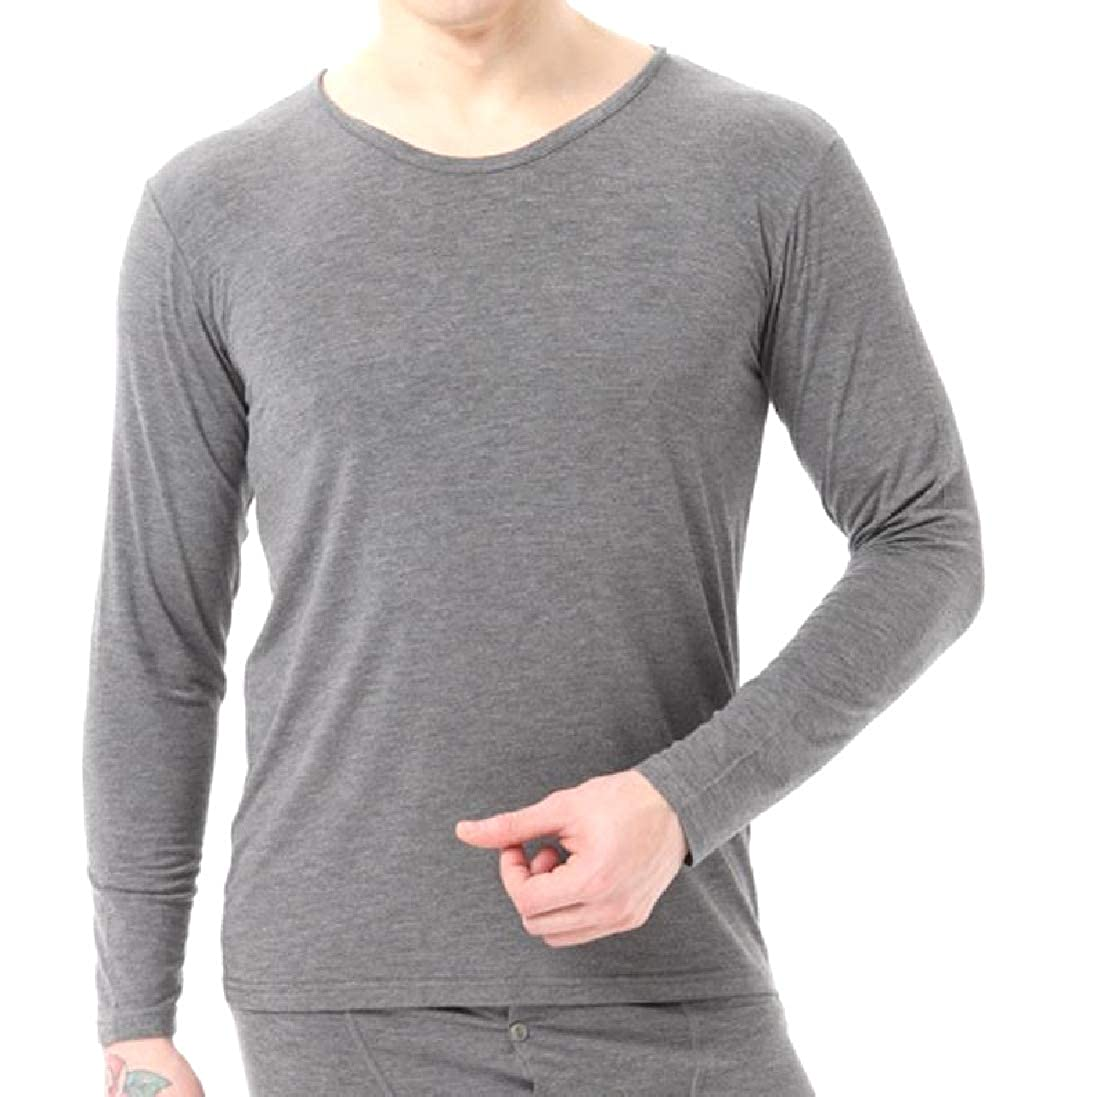 SportsX Mens Long-Sleeve Regular Fit Comfort Soft HeatGear Pullover